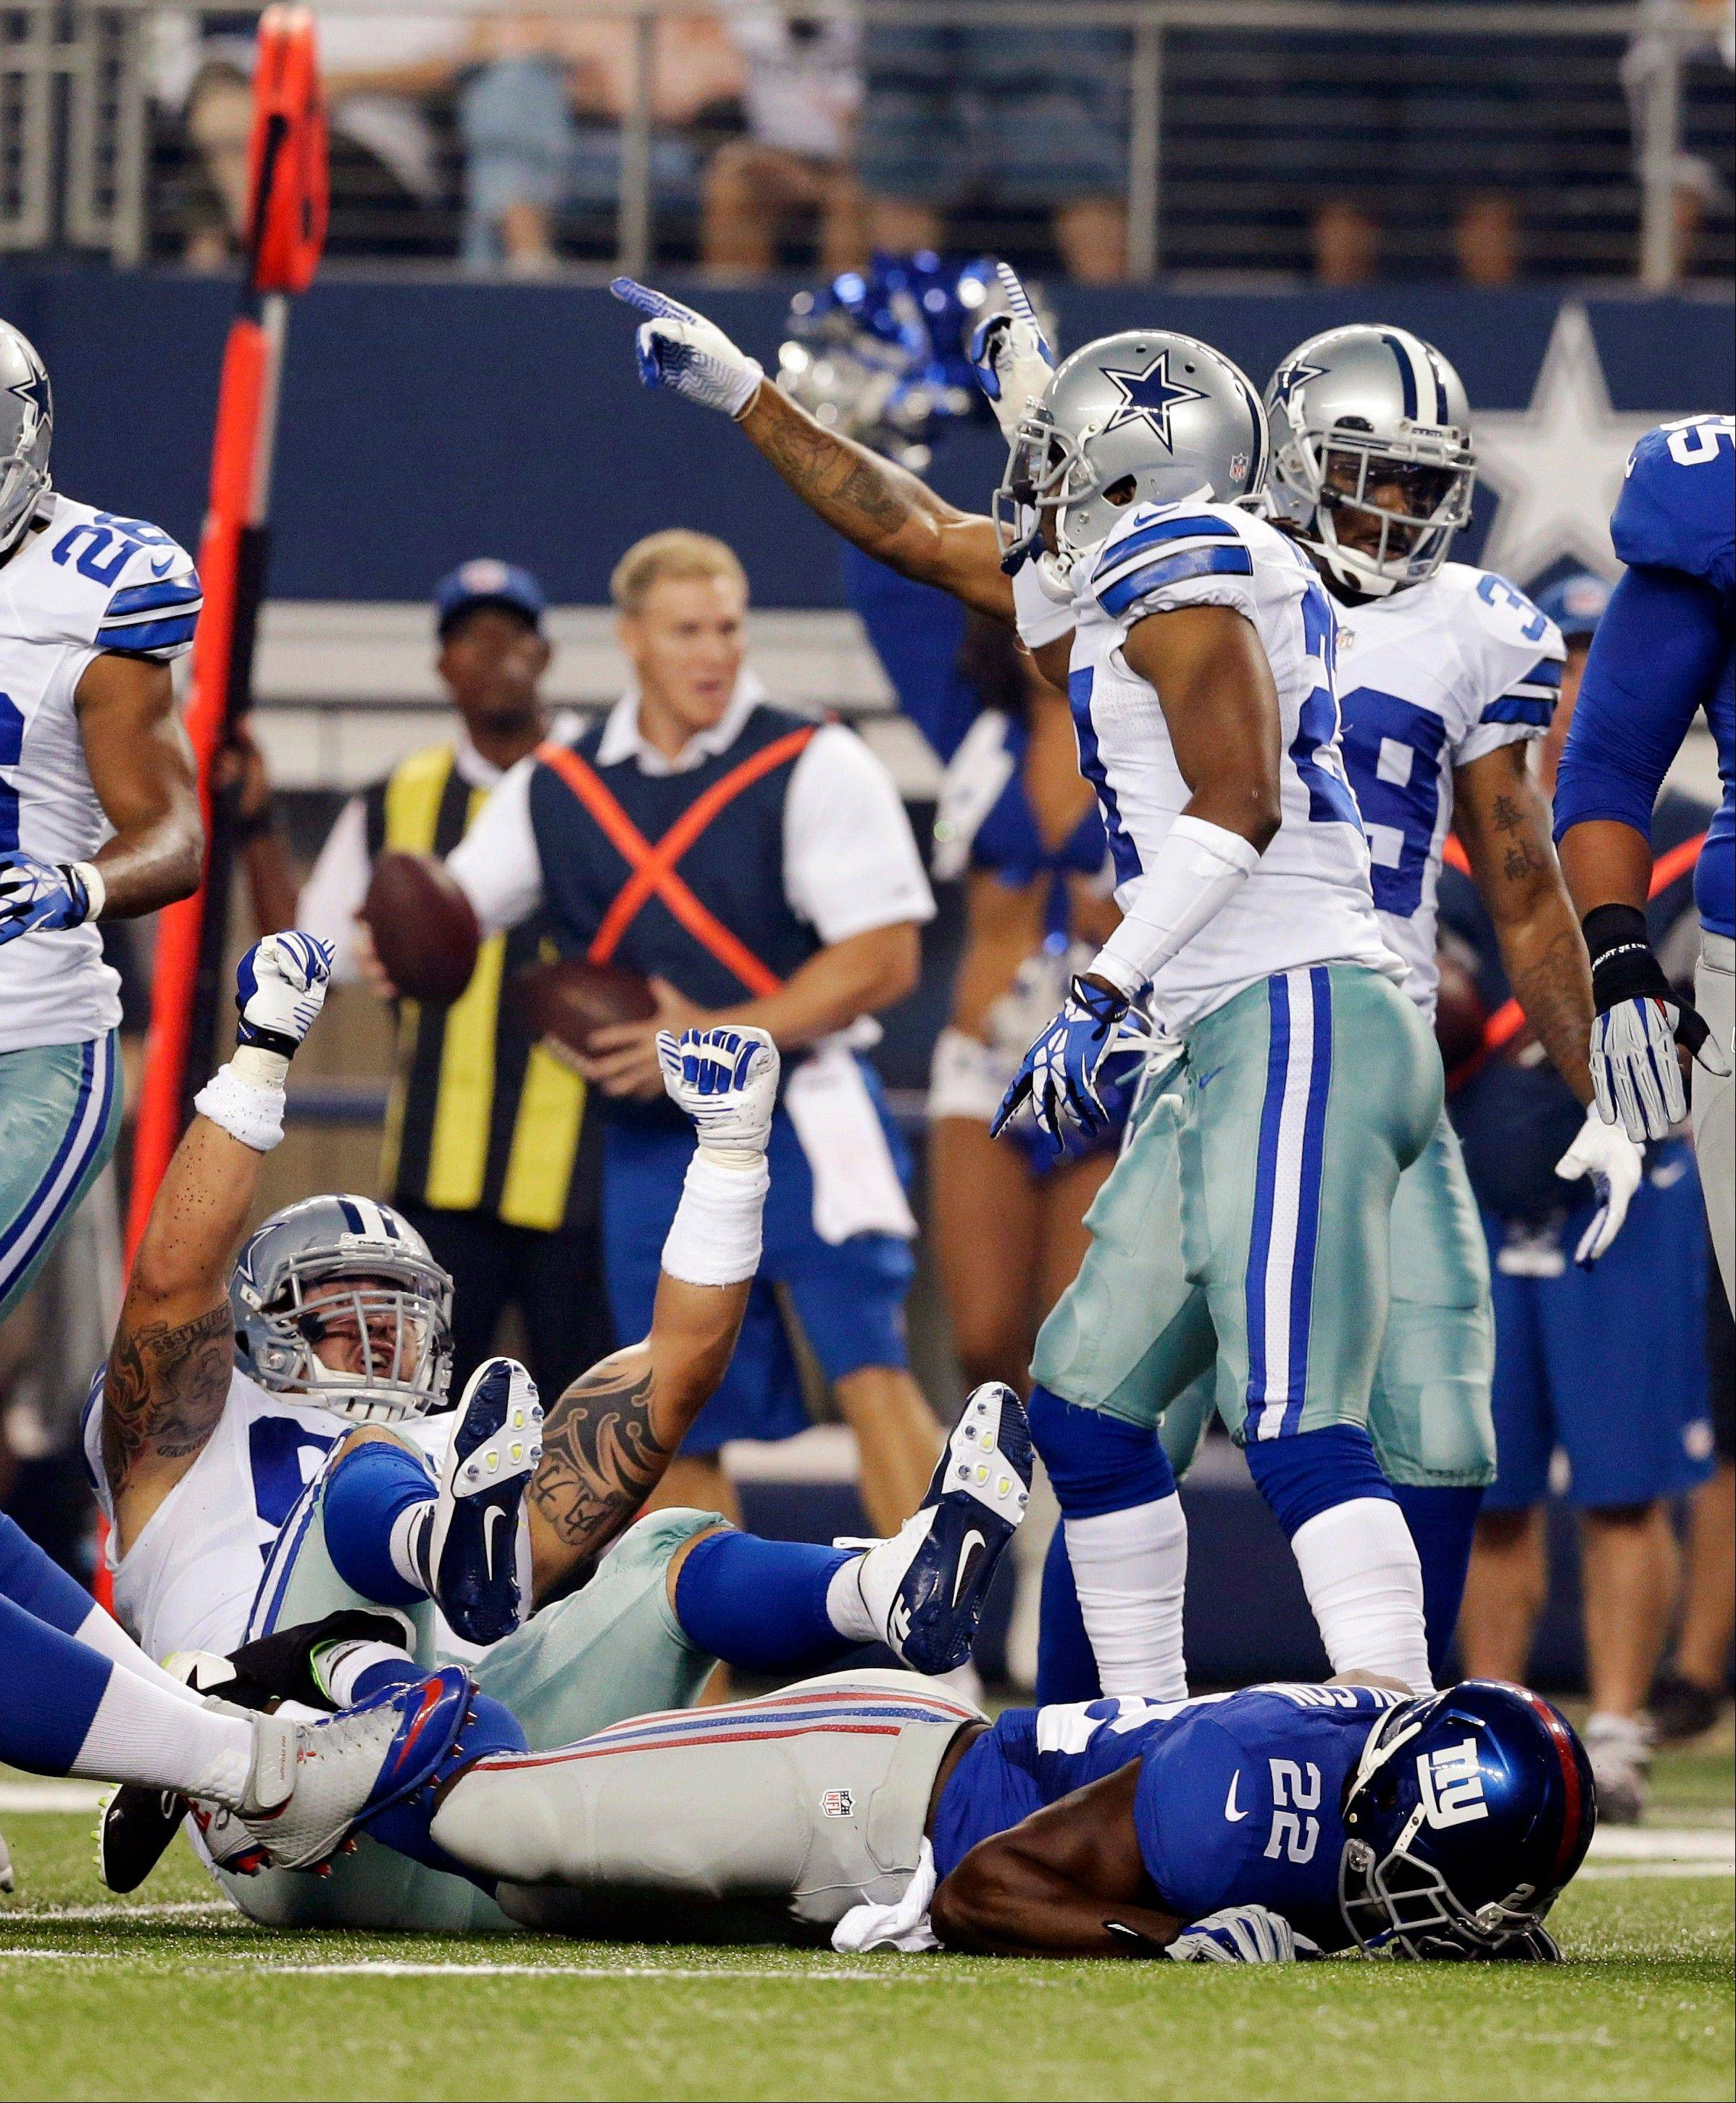 The Cowboys celebrate after recovering a fumble by Giants running back David Wilson during the first half Sunday in Arlington, Texas.